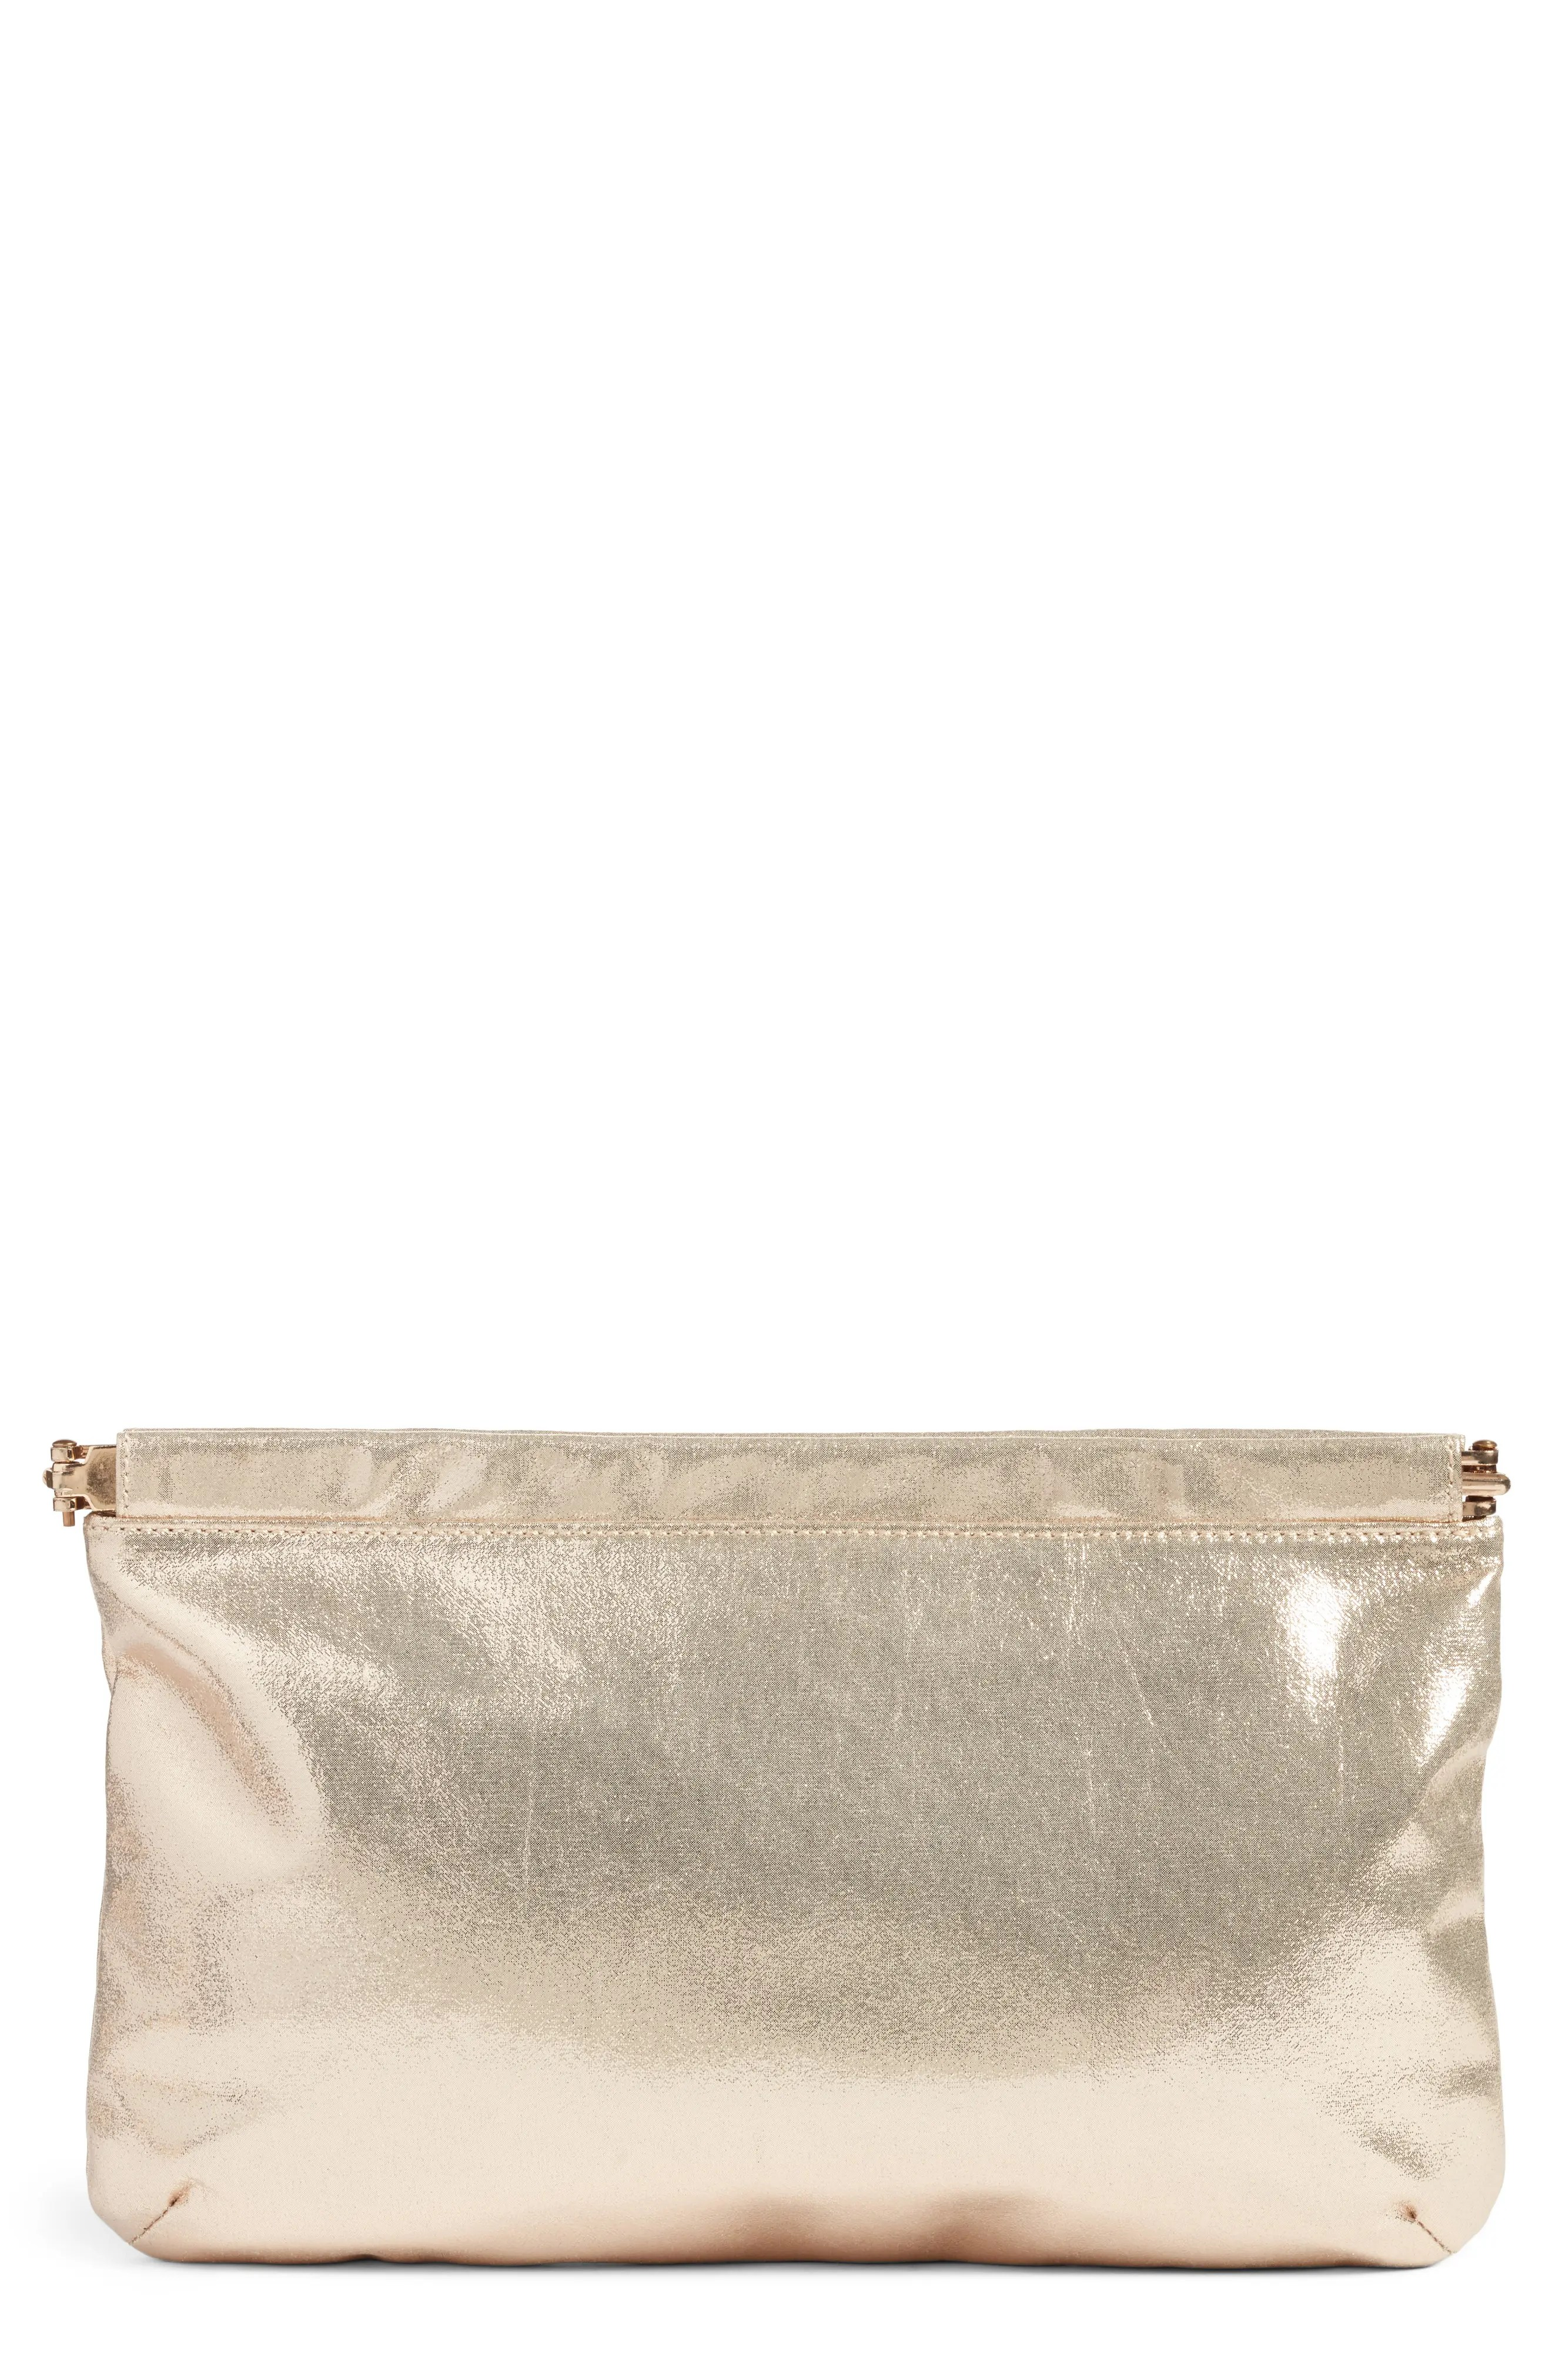 Main Image - BP. Metallic Frame Clutch